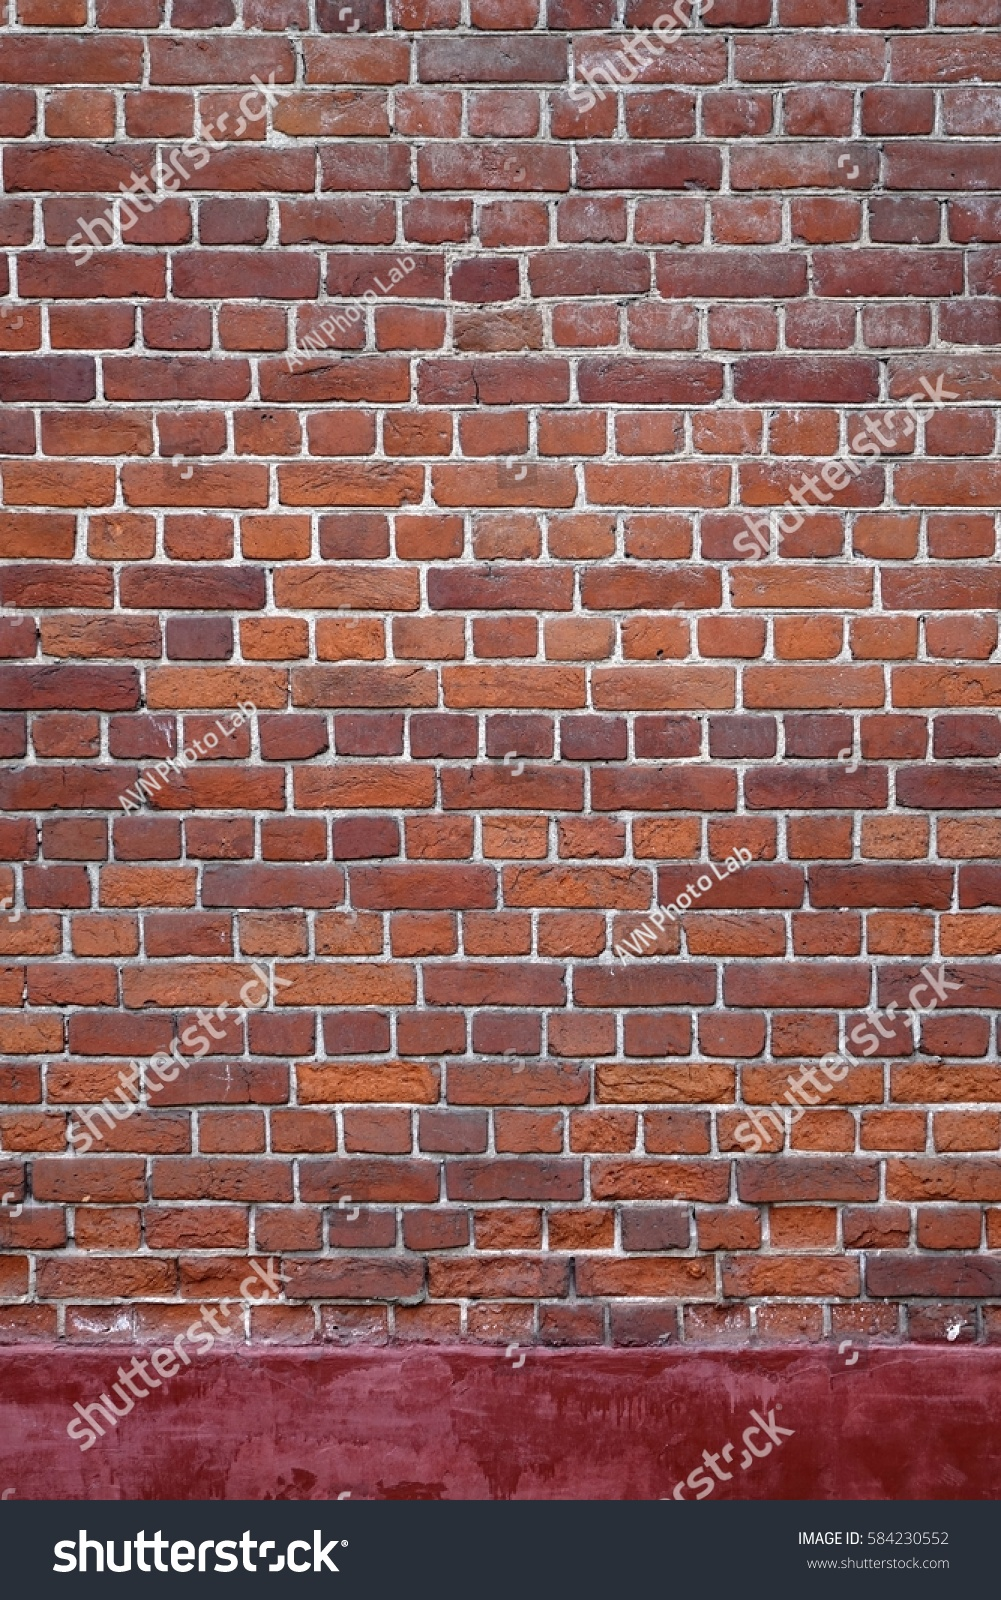 Old Vintage Distressed Red Brick Wall Stock Photo 584230552 Shutterstock